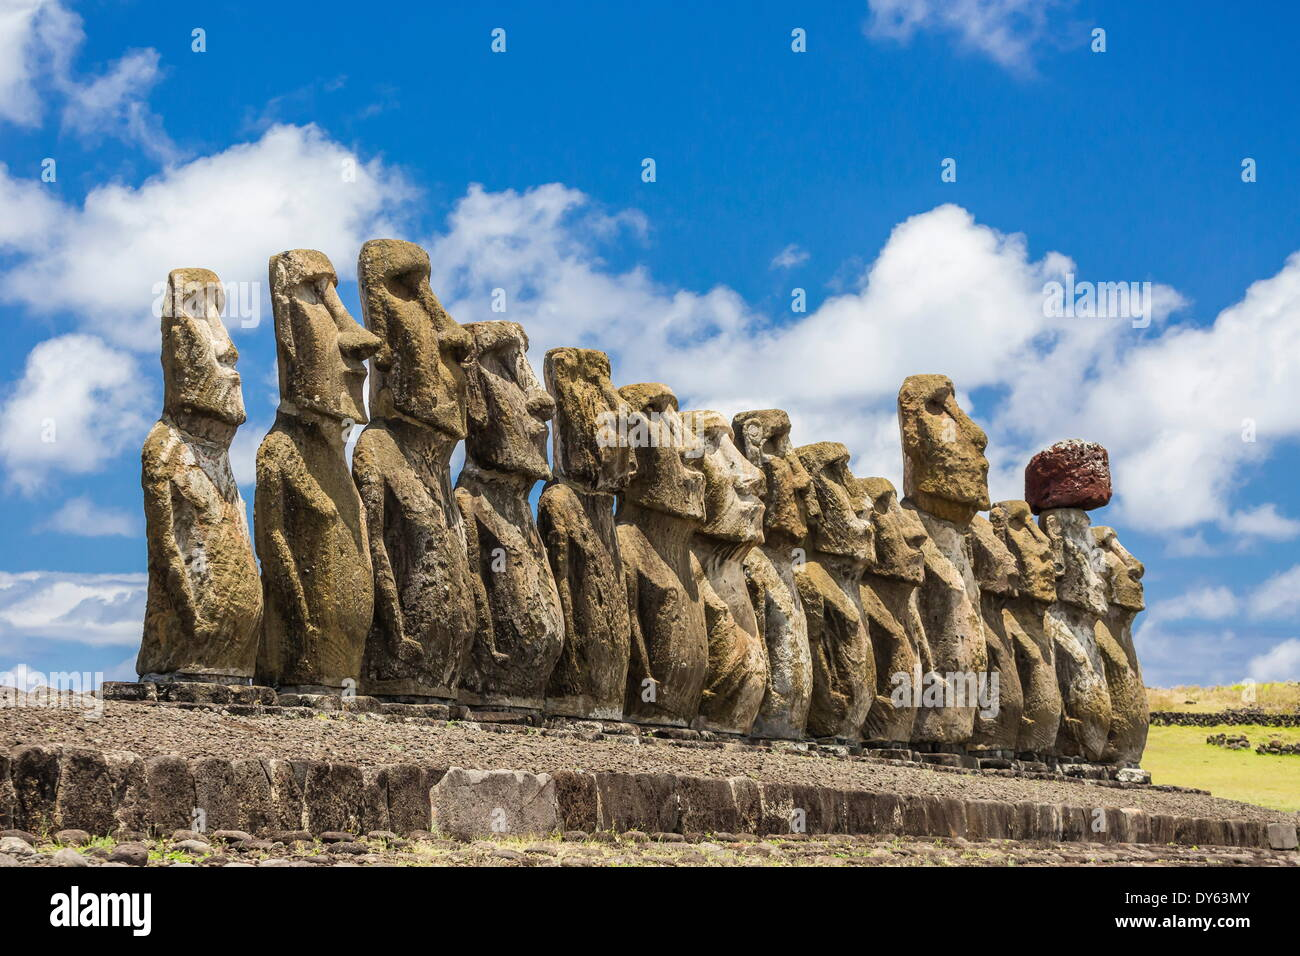 Fifteen moai at the restored ceremonial site of Ahu Tongariki on Easter Island (Isla de Pascua) (Rapa Nui), UNESCO Site, Chile - Stock Image